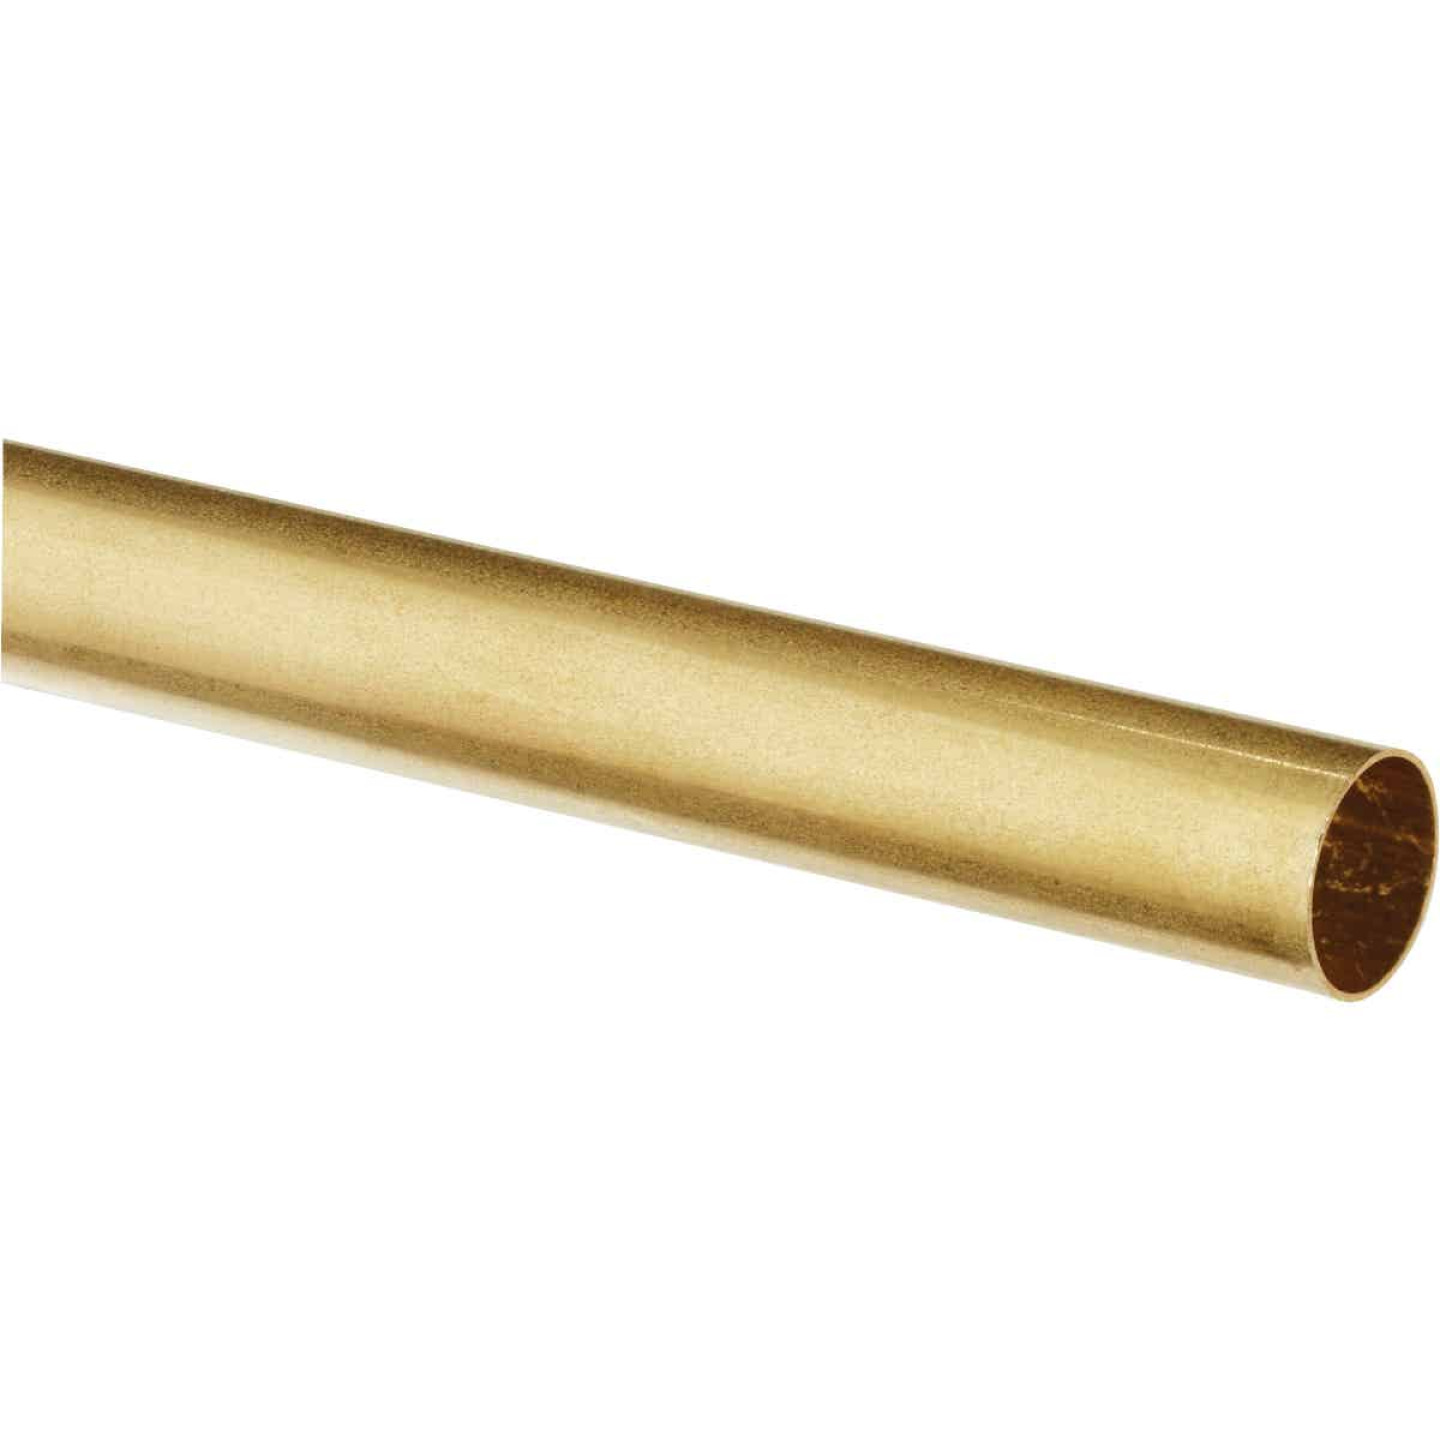 K&S Brass 3/16 In. O.D. x 1 Ft. Round Tube Stock Image 1